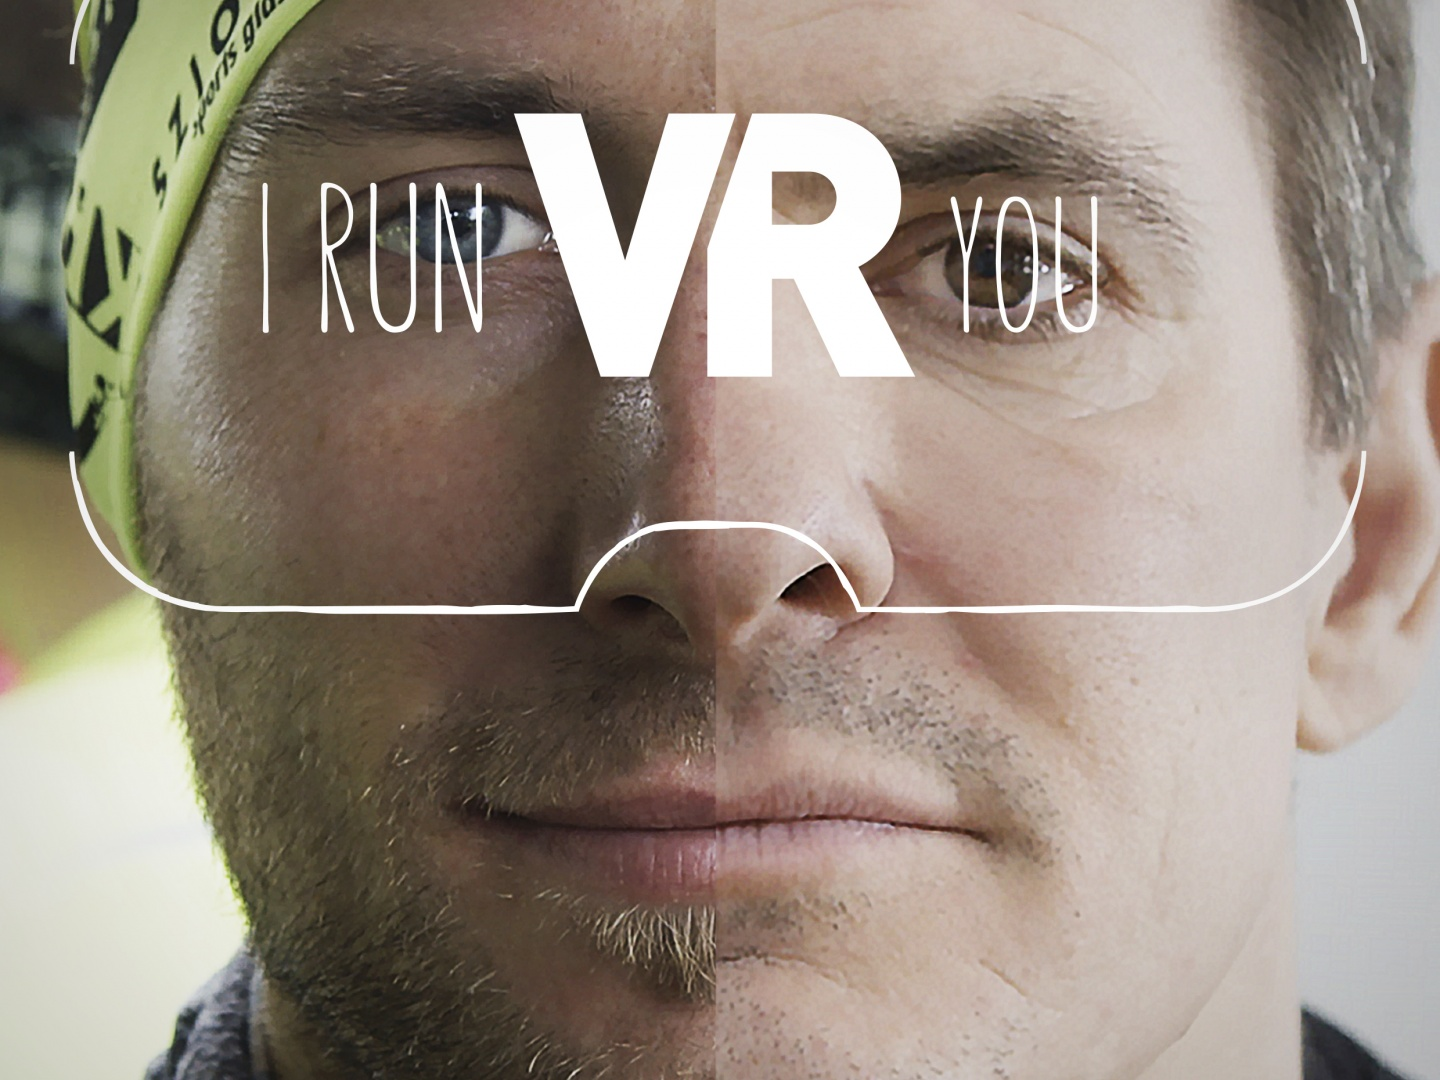 I RUN VR YOU Thumbnail